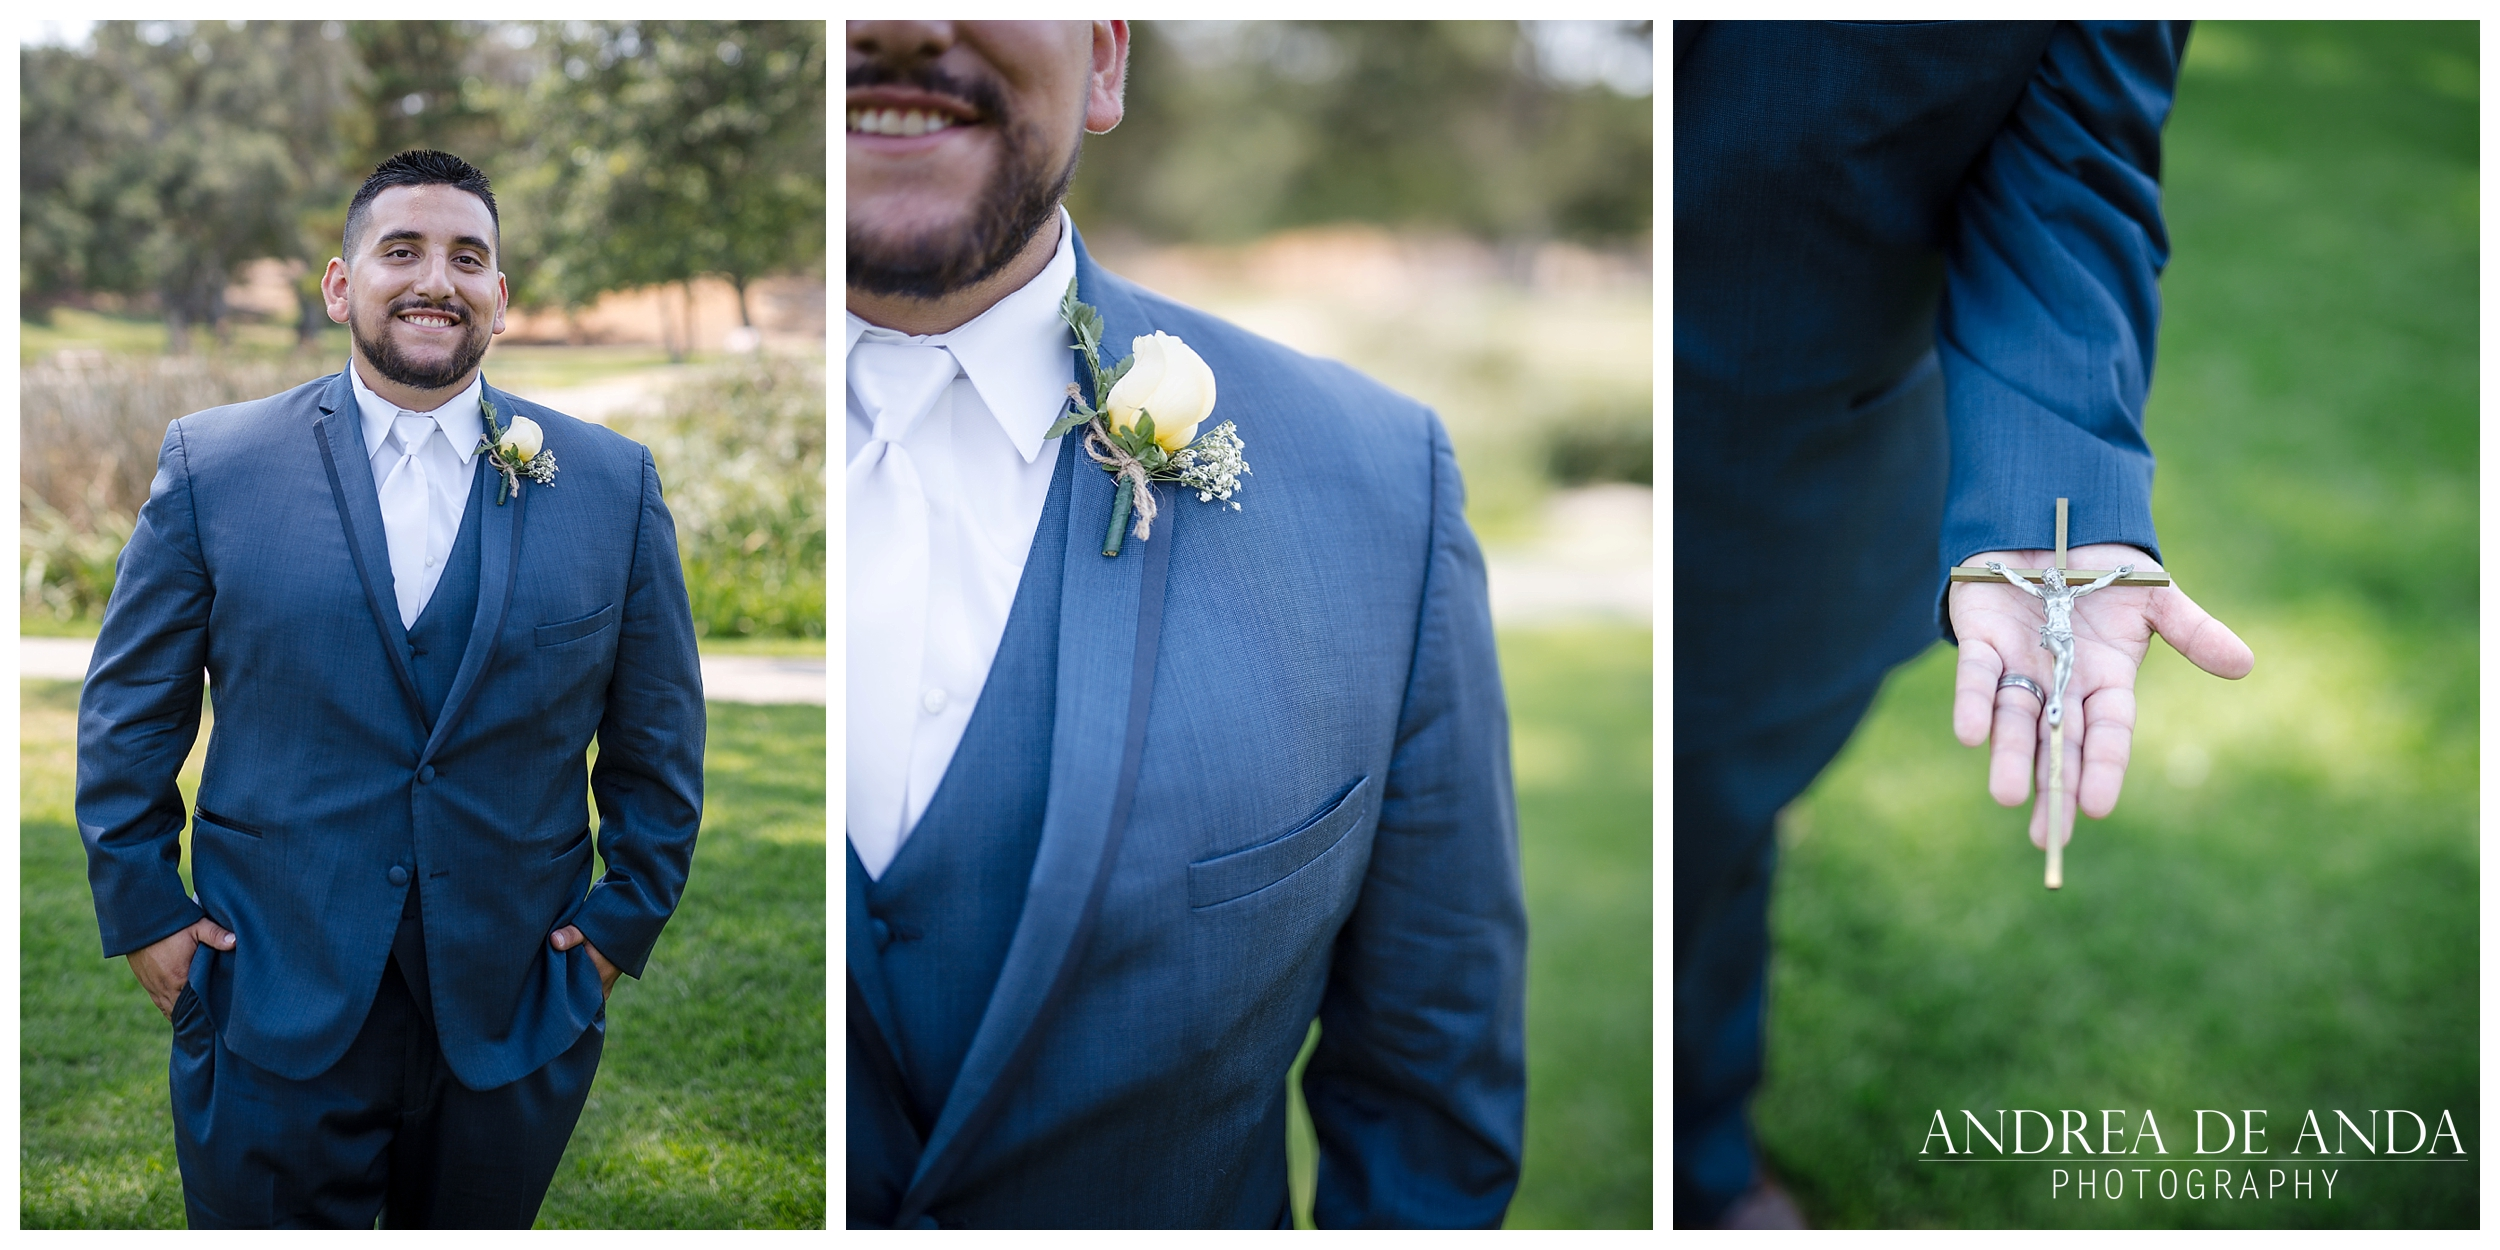 San Jose Wedding Photograhy by Andrea de Anda Photography__0019.jpg